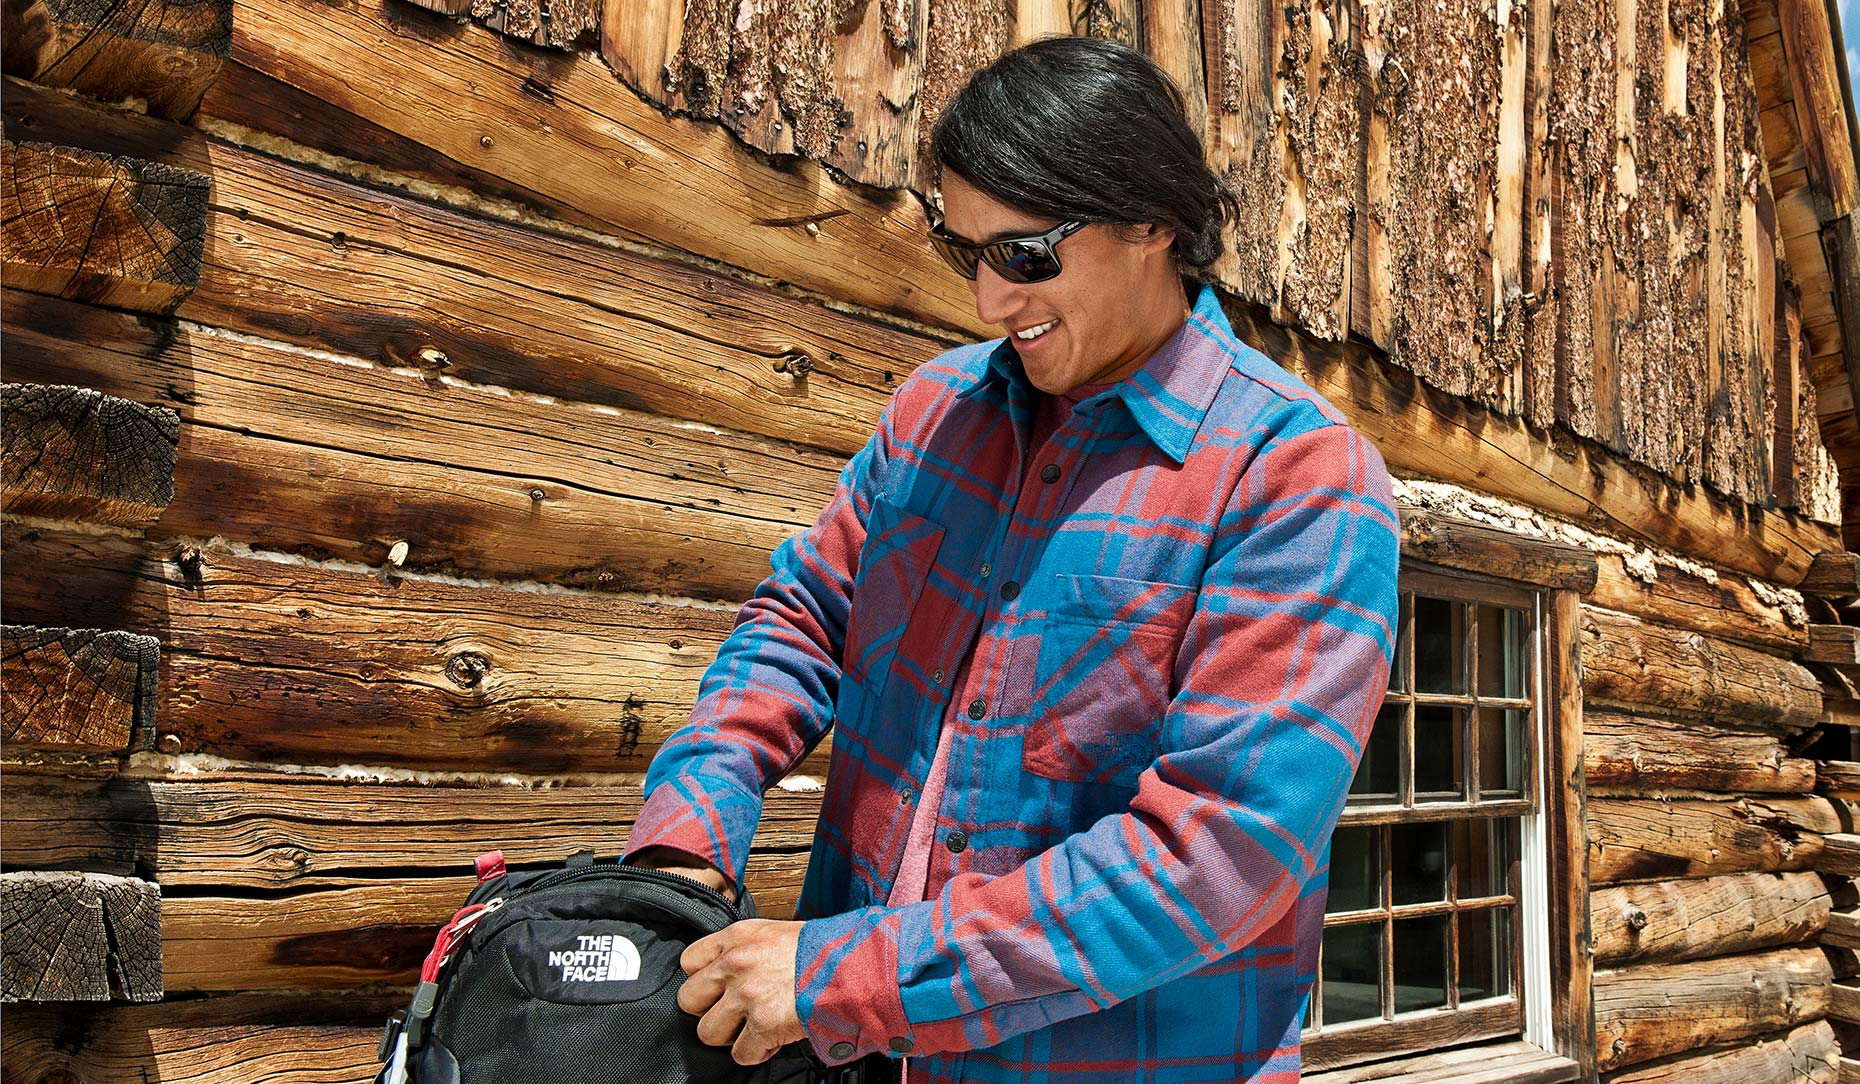 Ian-Coble-Revo-Sunglasses-Jimmy-Chin-Ad-Telluride-1